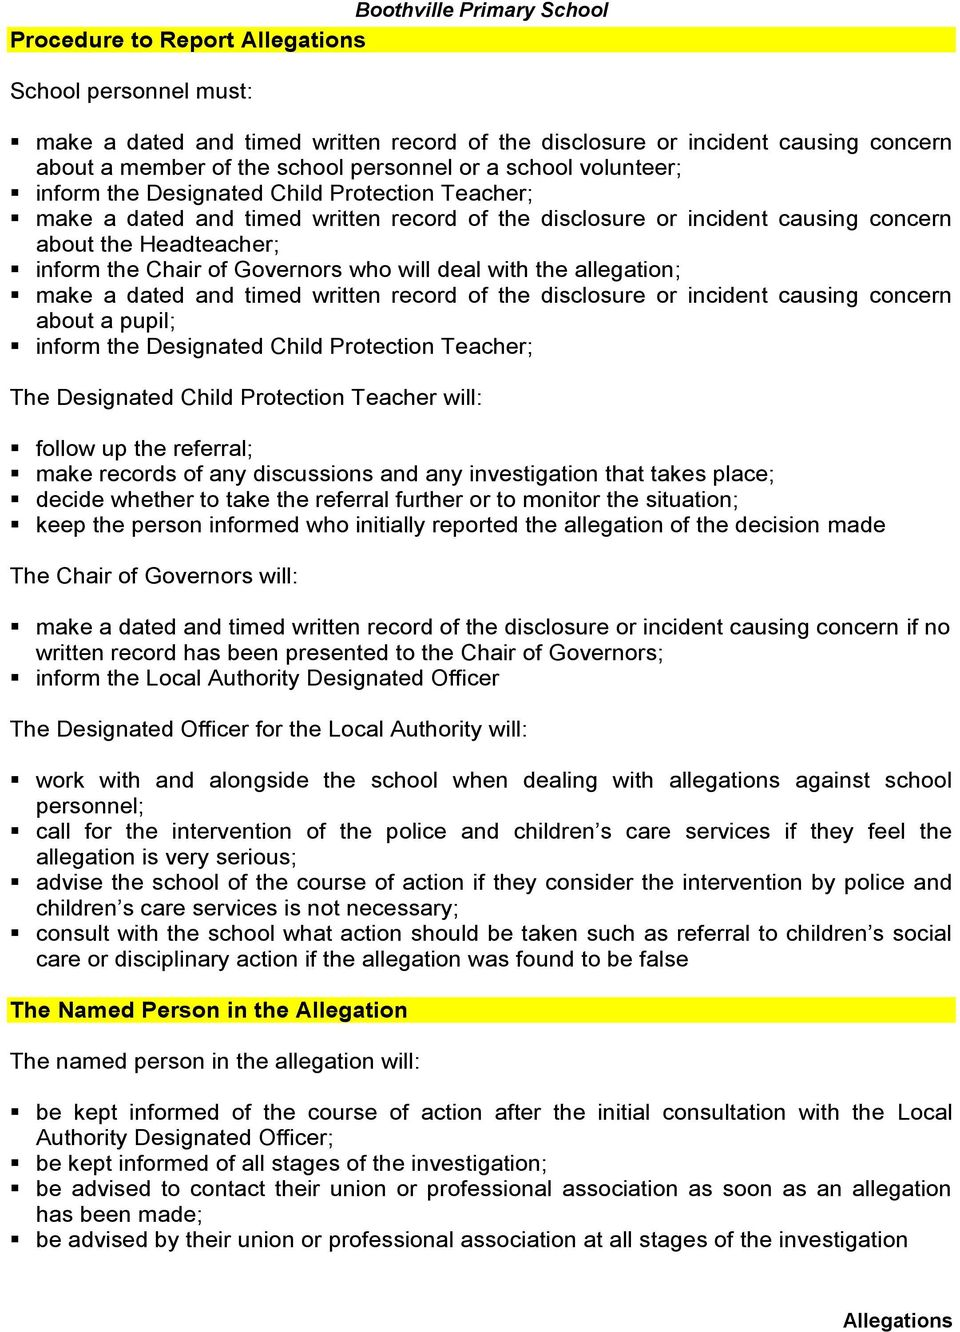 allegation; make a dated and timed written record of the disclosure or incident causing concern about a pupil; inform the Designated Child Protection Teacher; The Designated Child Protection Teacher